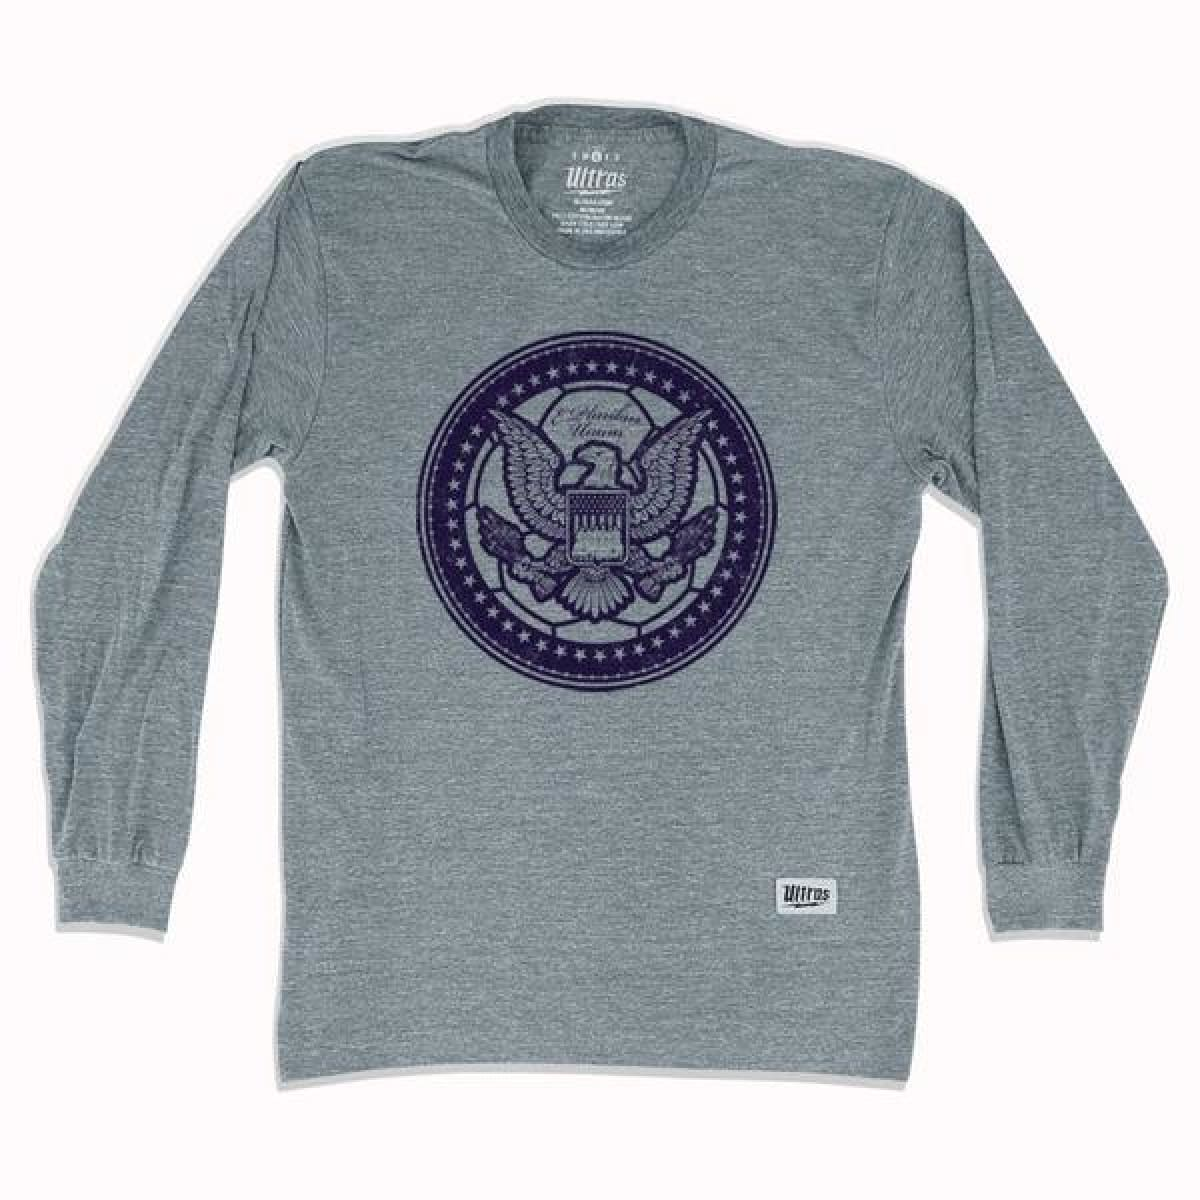 USA Eagle Soccer Ball Long Sleeve T-shirt - Athletic Grey / Adult Small - Ultras USA Soccer T-shirts